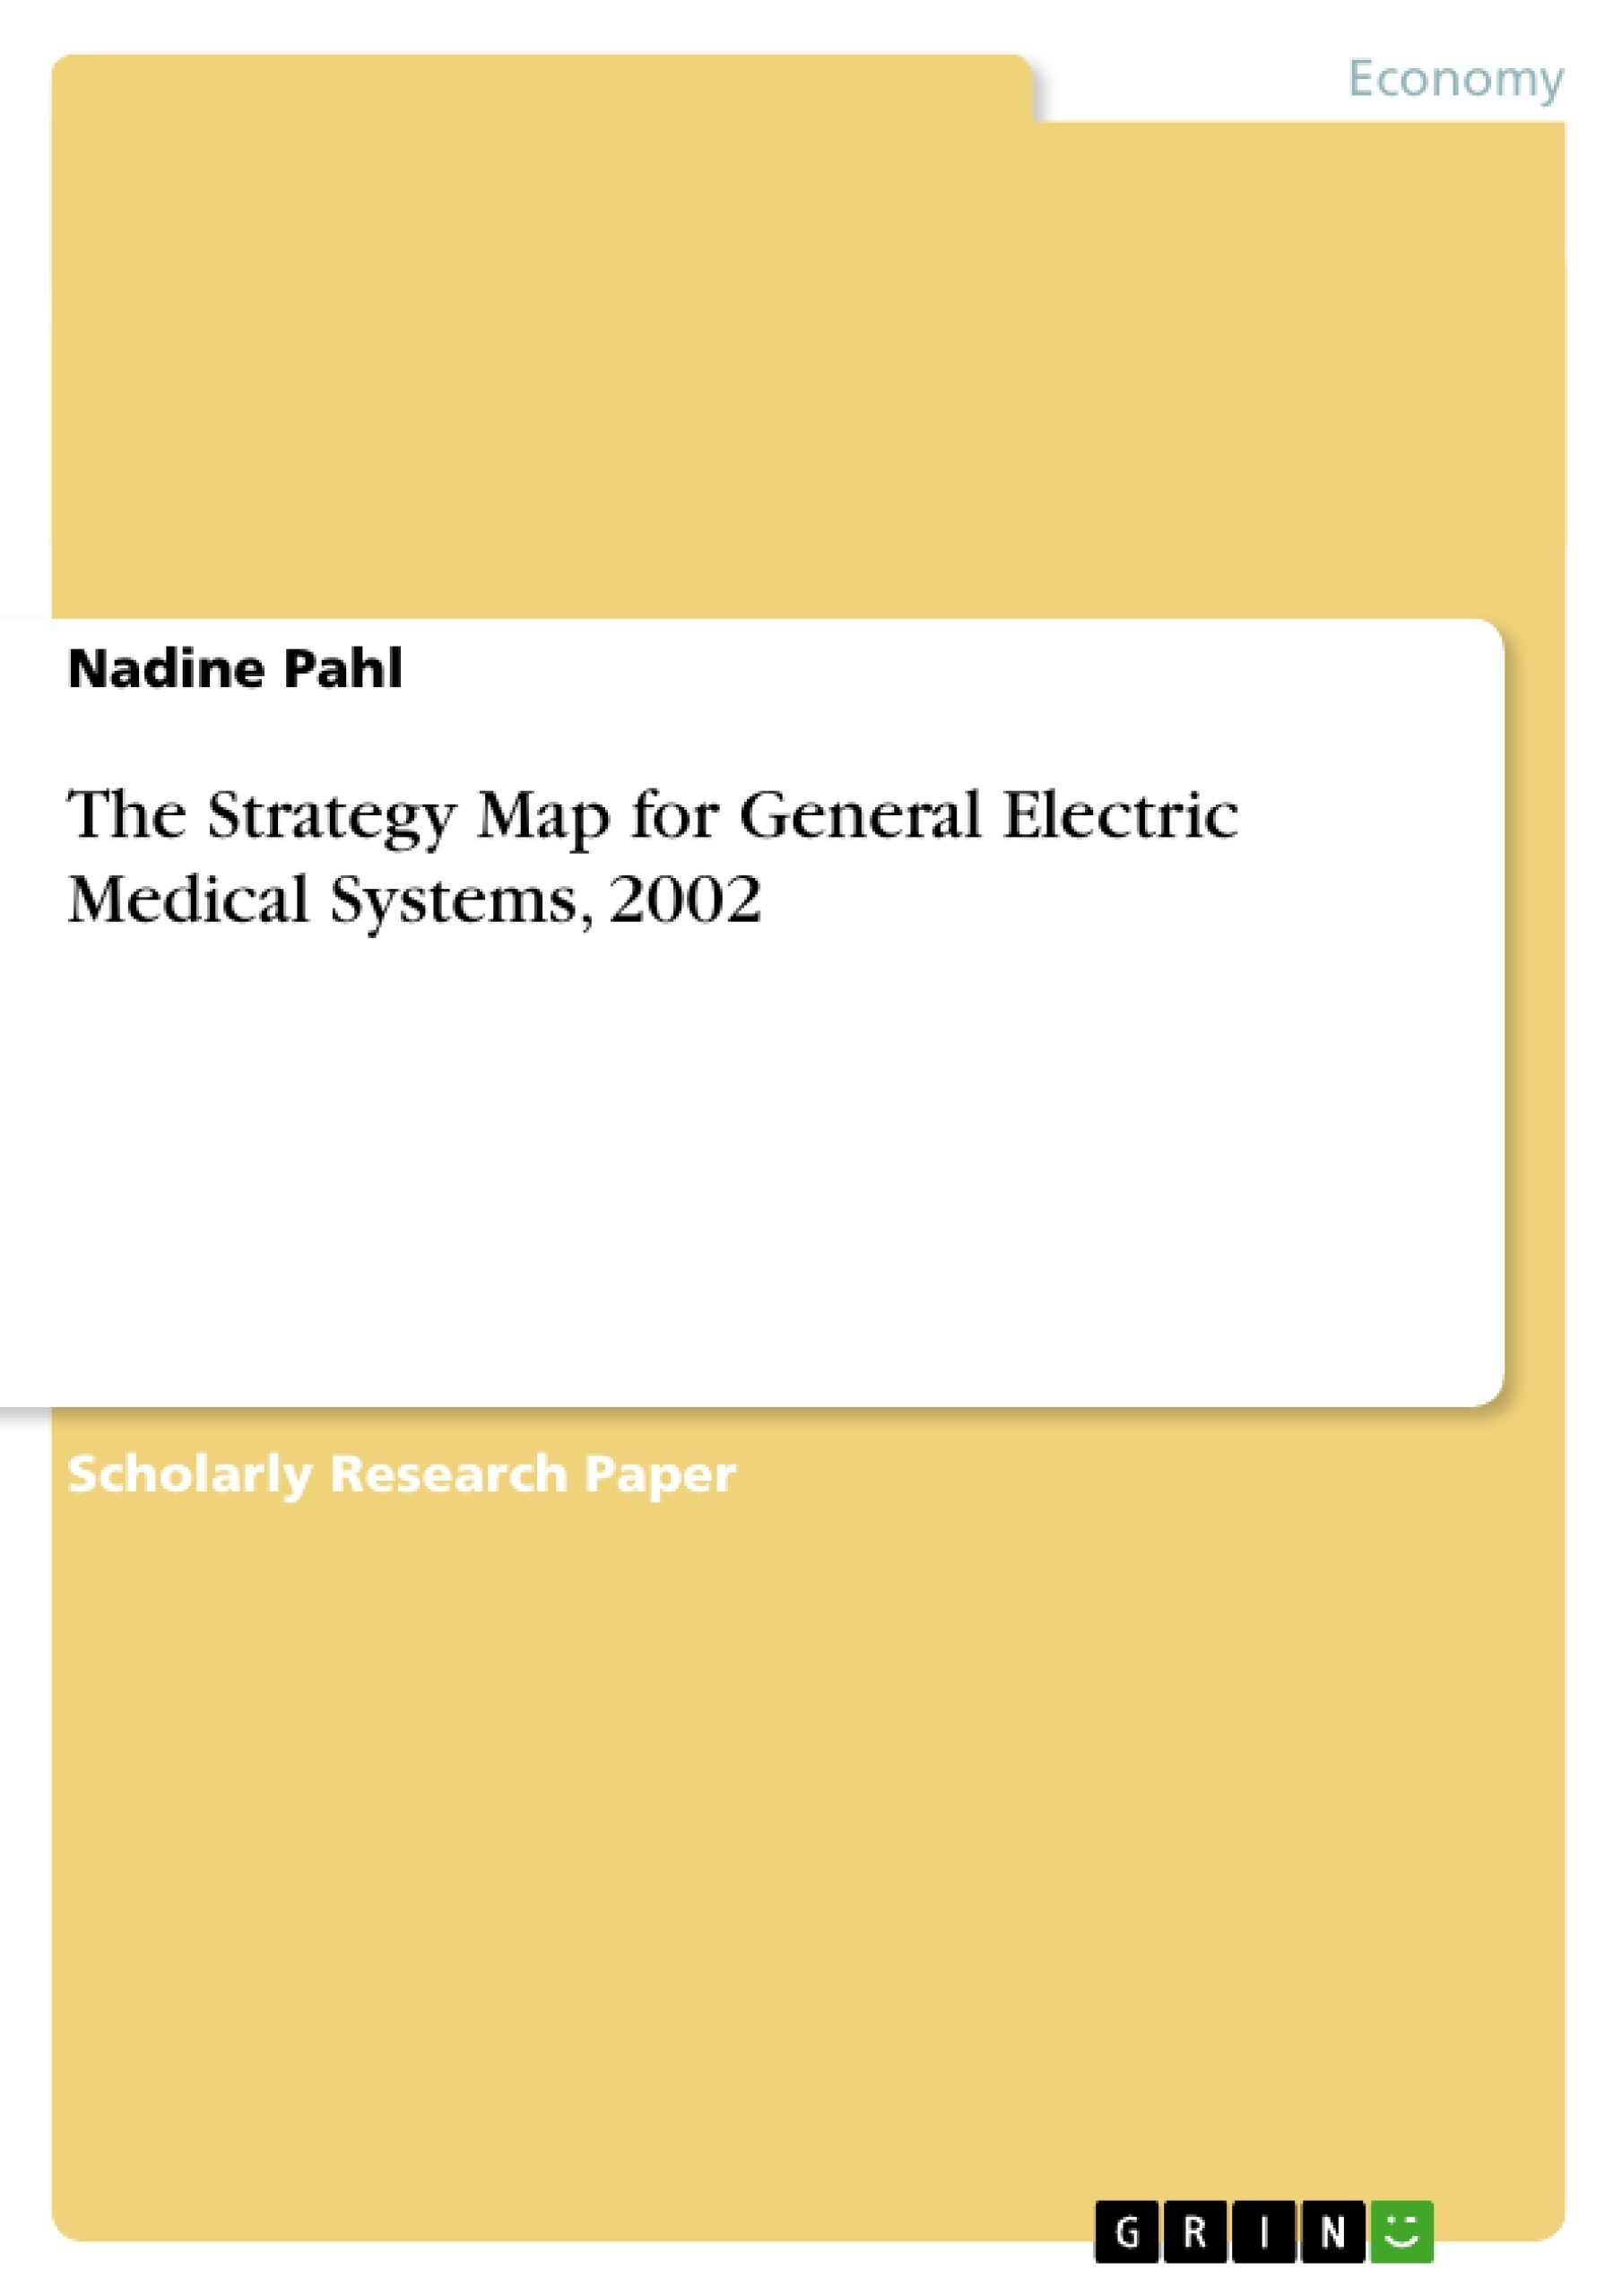 Title: The Strategy Map for General Electric Medical Systems, 2002